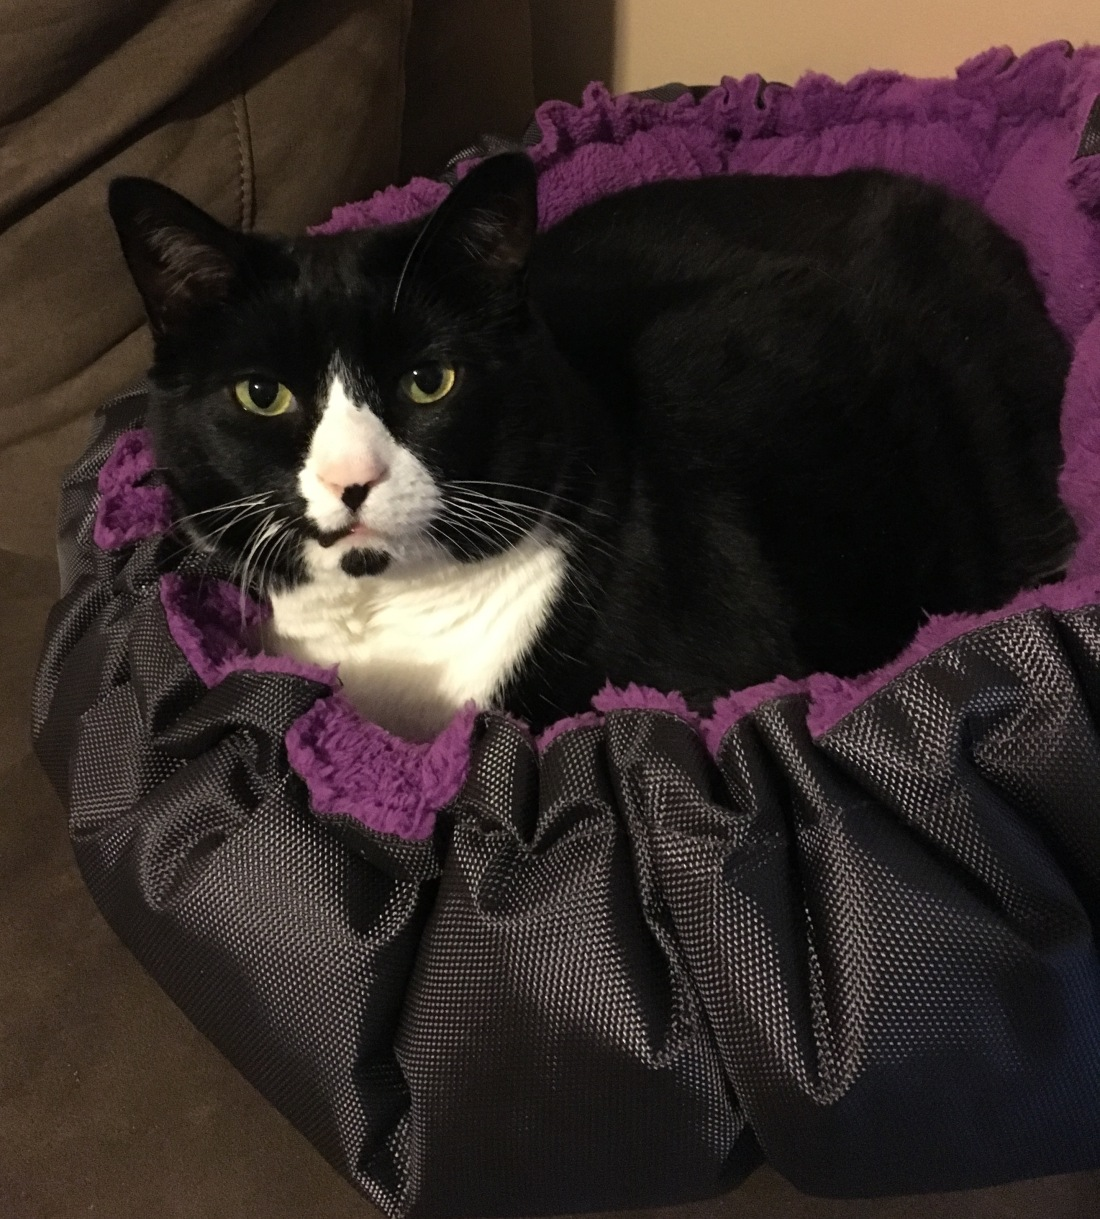 Cat sitting in cat bed